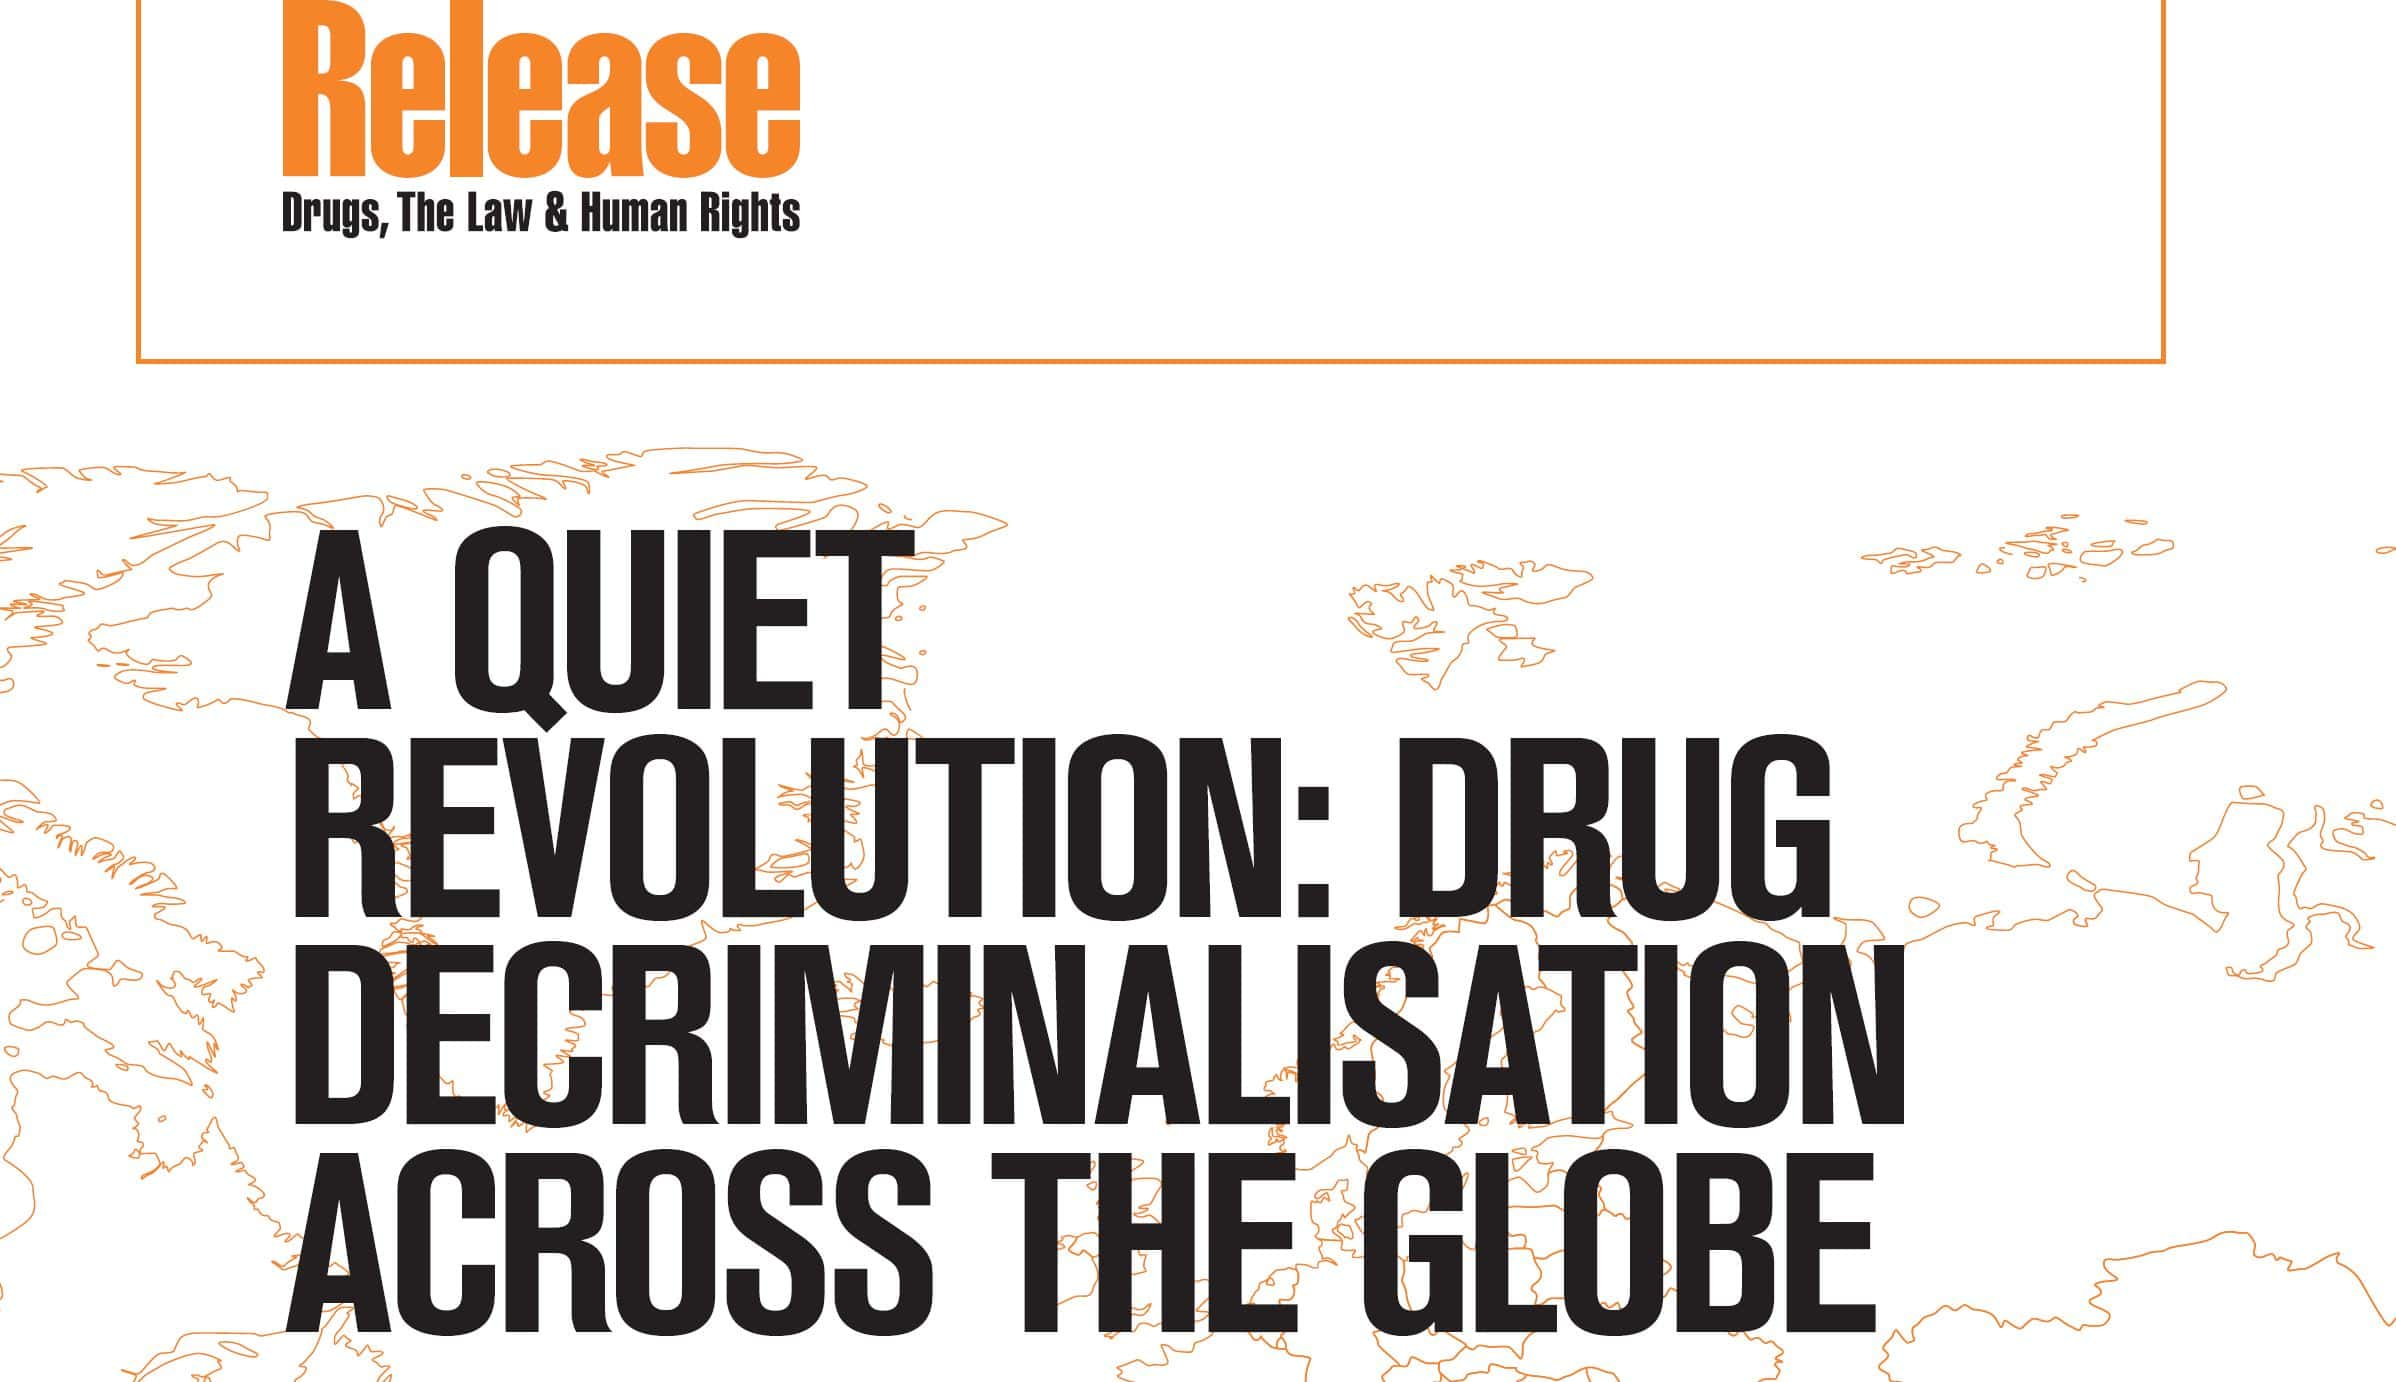 A report cover with an orange logo